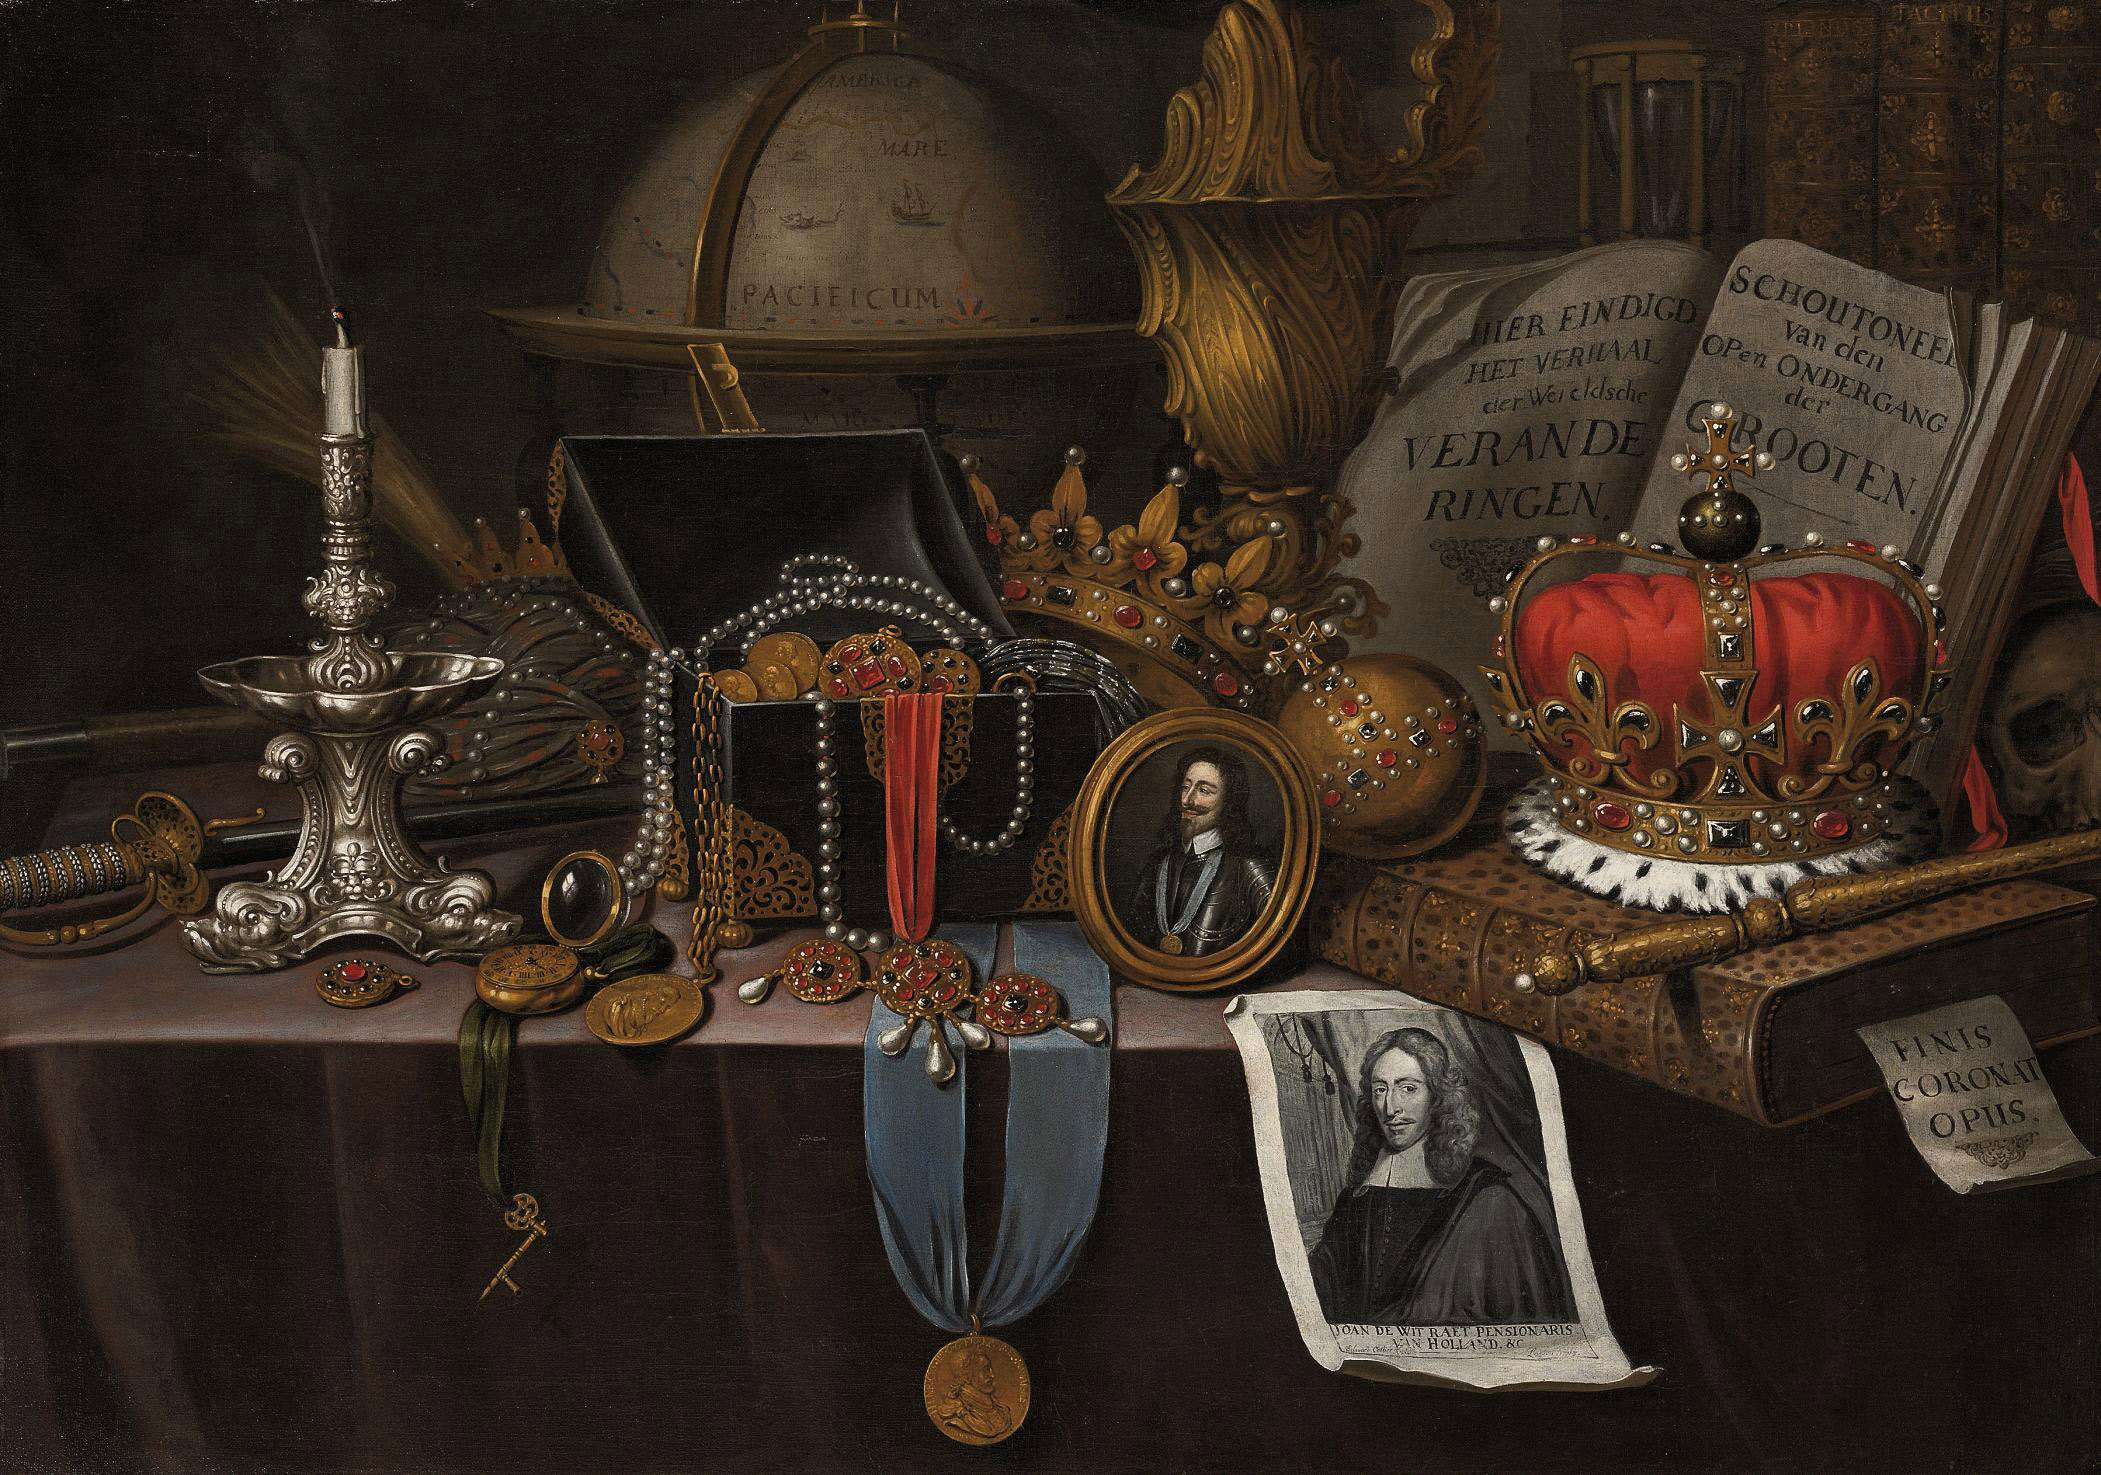 A Vanitas with a medallion of Henri IV of France, a candlestick, globe and other objects, on a draped table